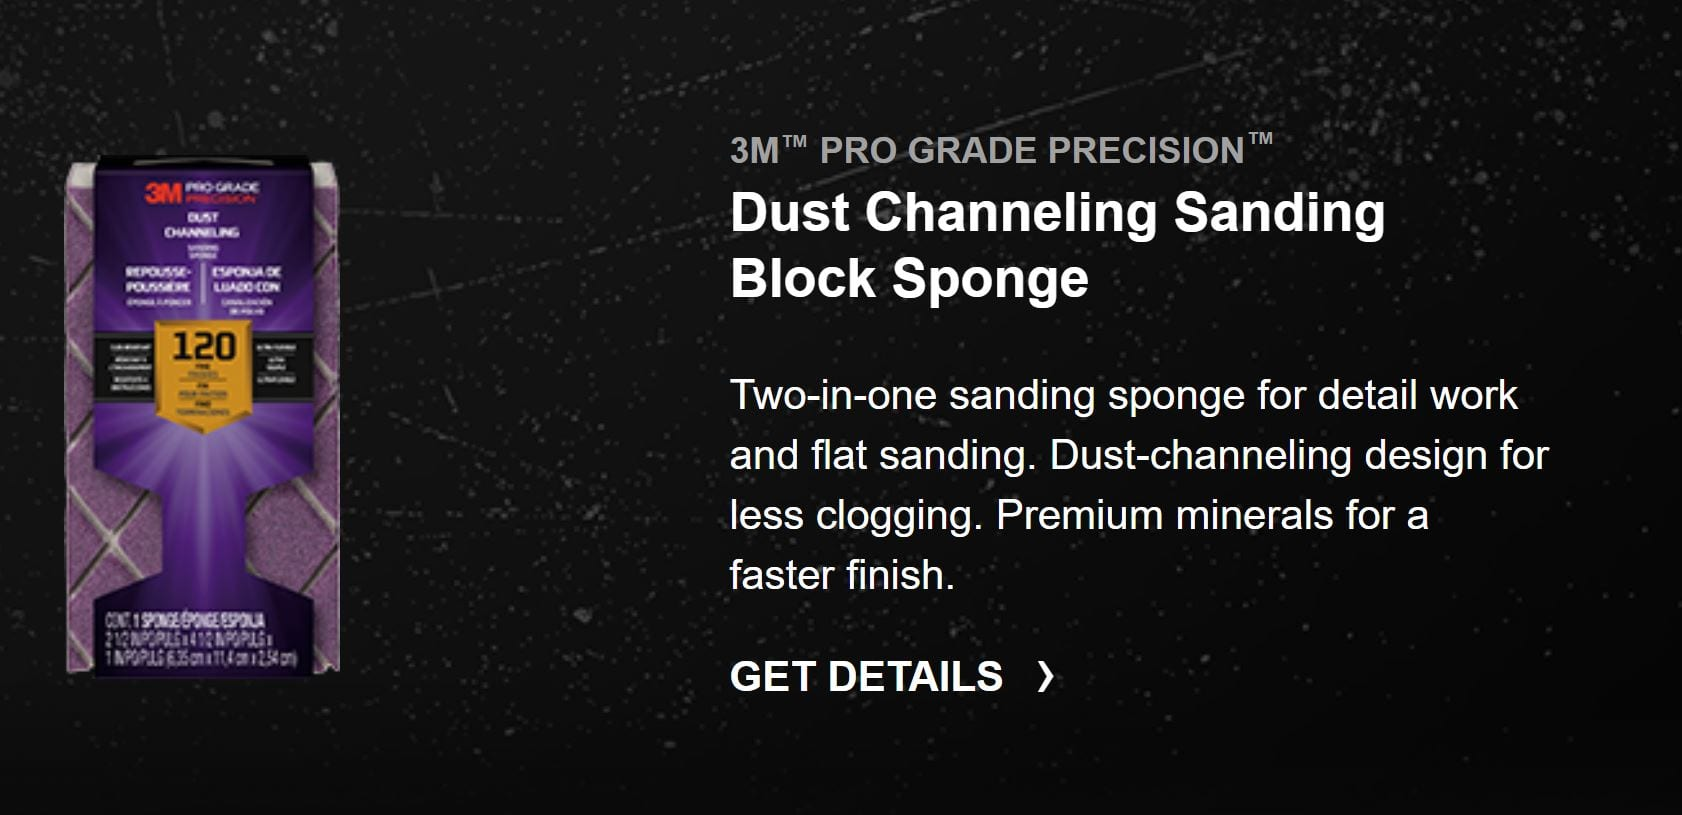 Dust Channeling Sanding Block Sponge